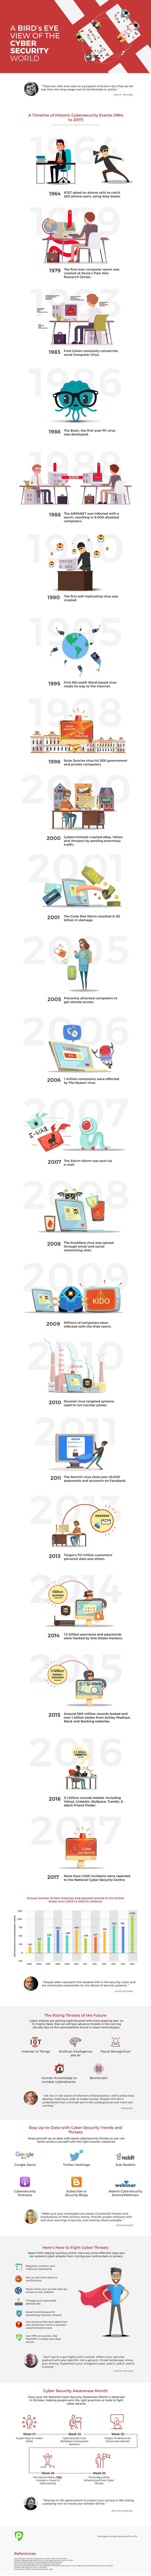 History of Cyber Crimes (1964 - 2017)